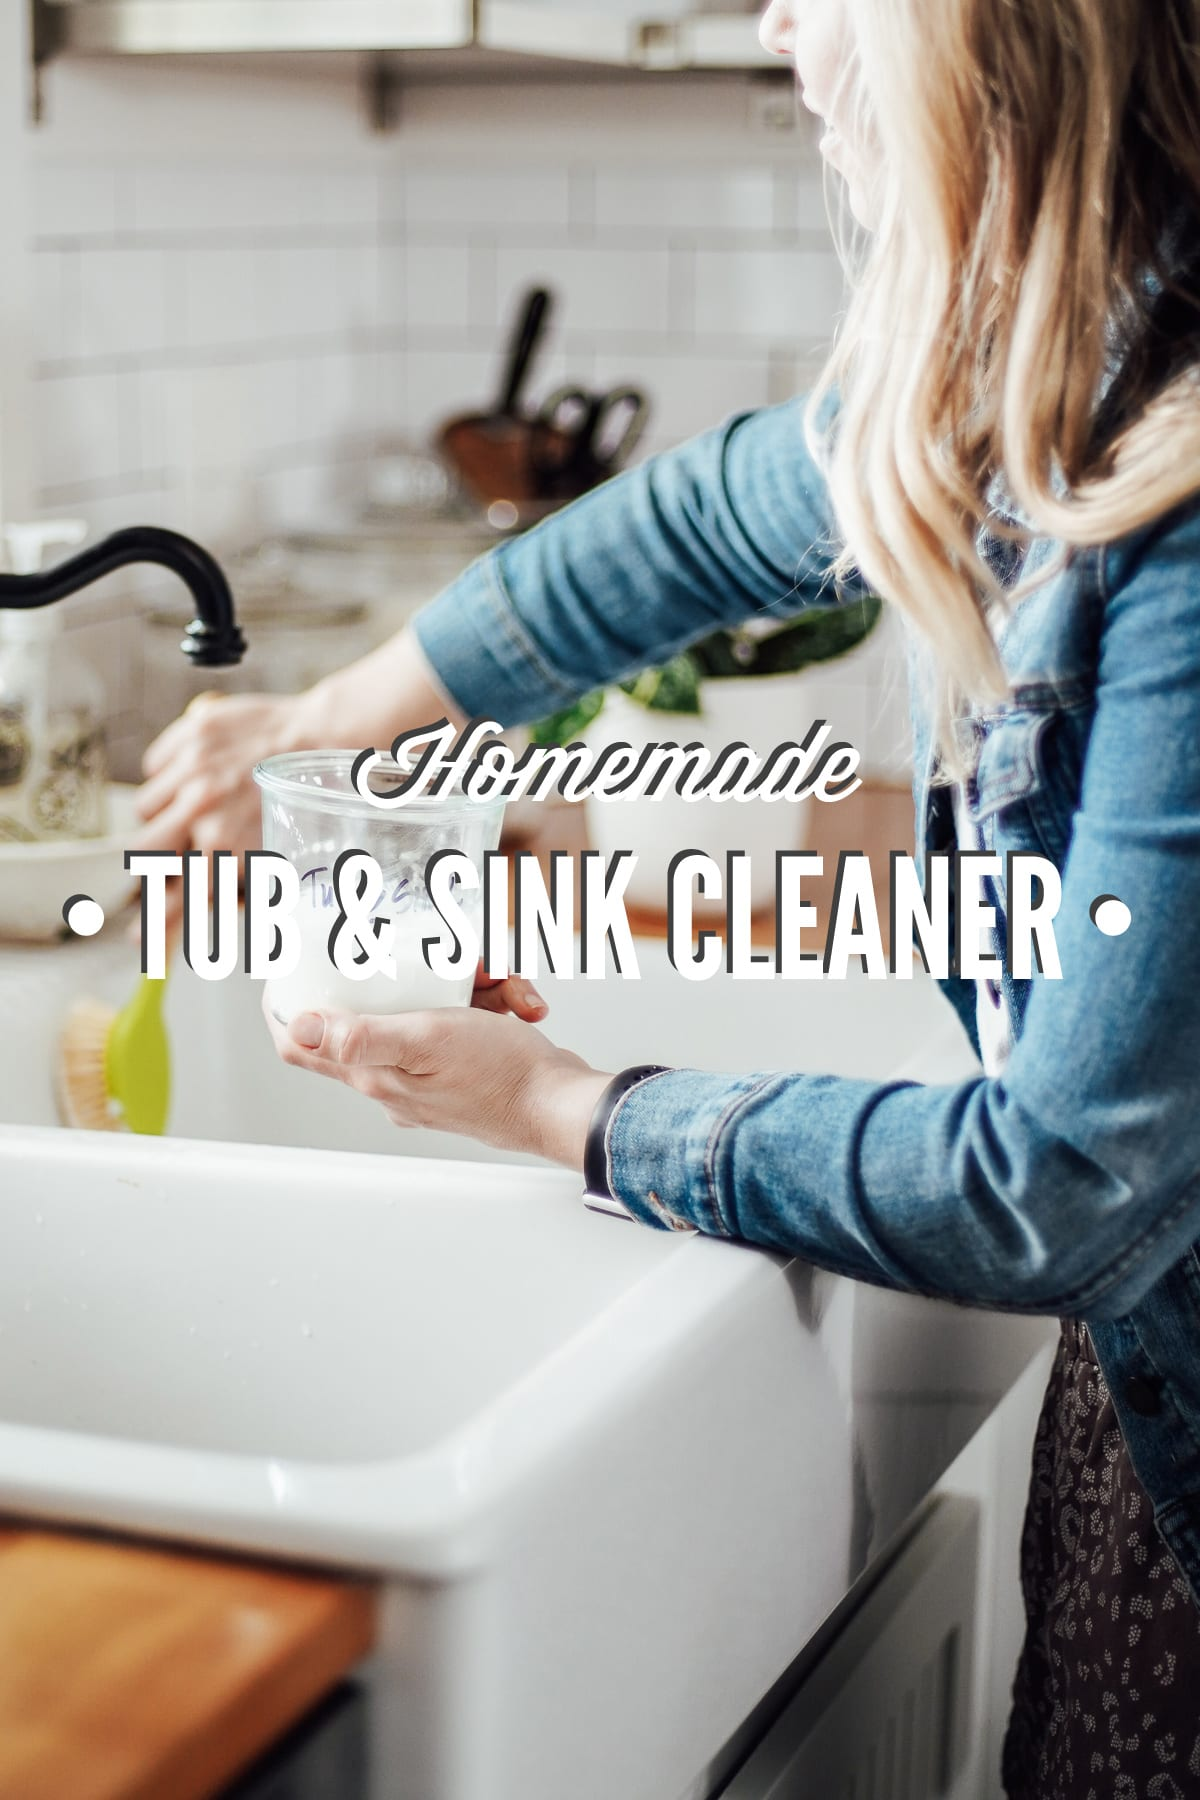 Homemade Tub and Sink Cleaner